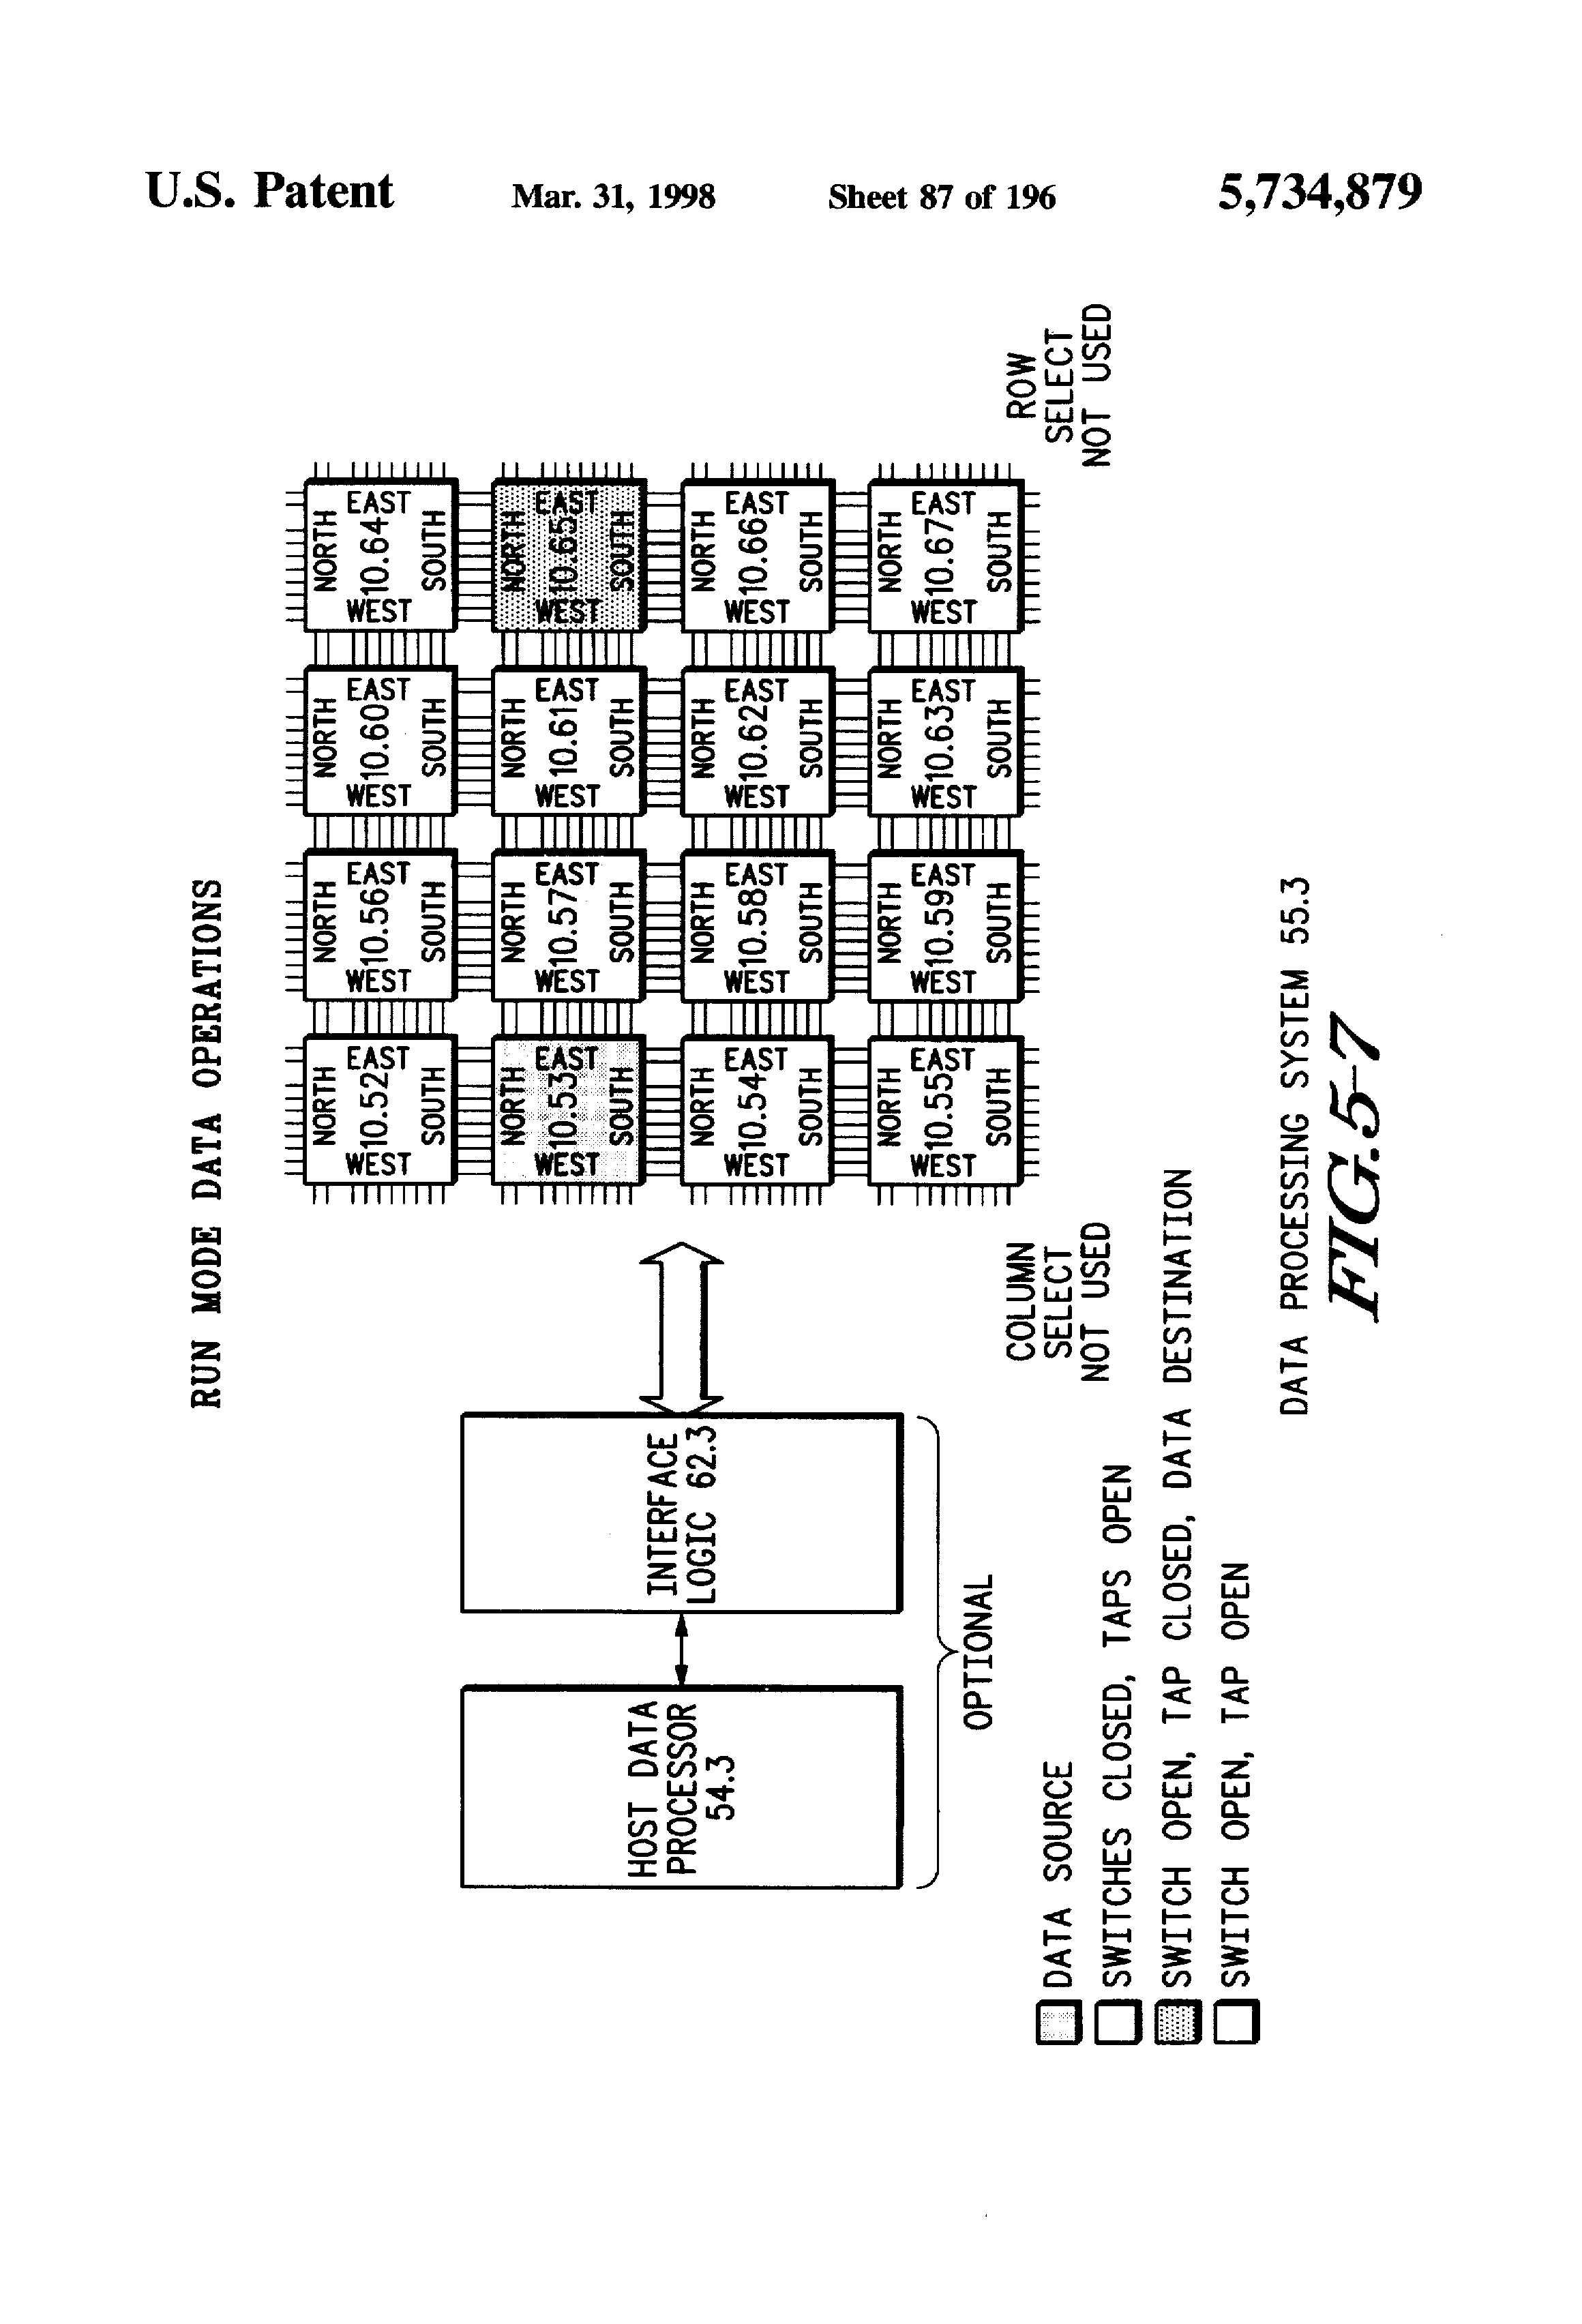 the instruction at 0x77 referenced memory